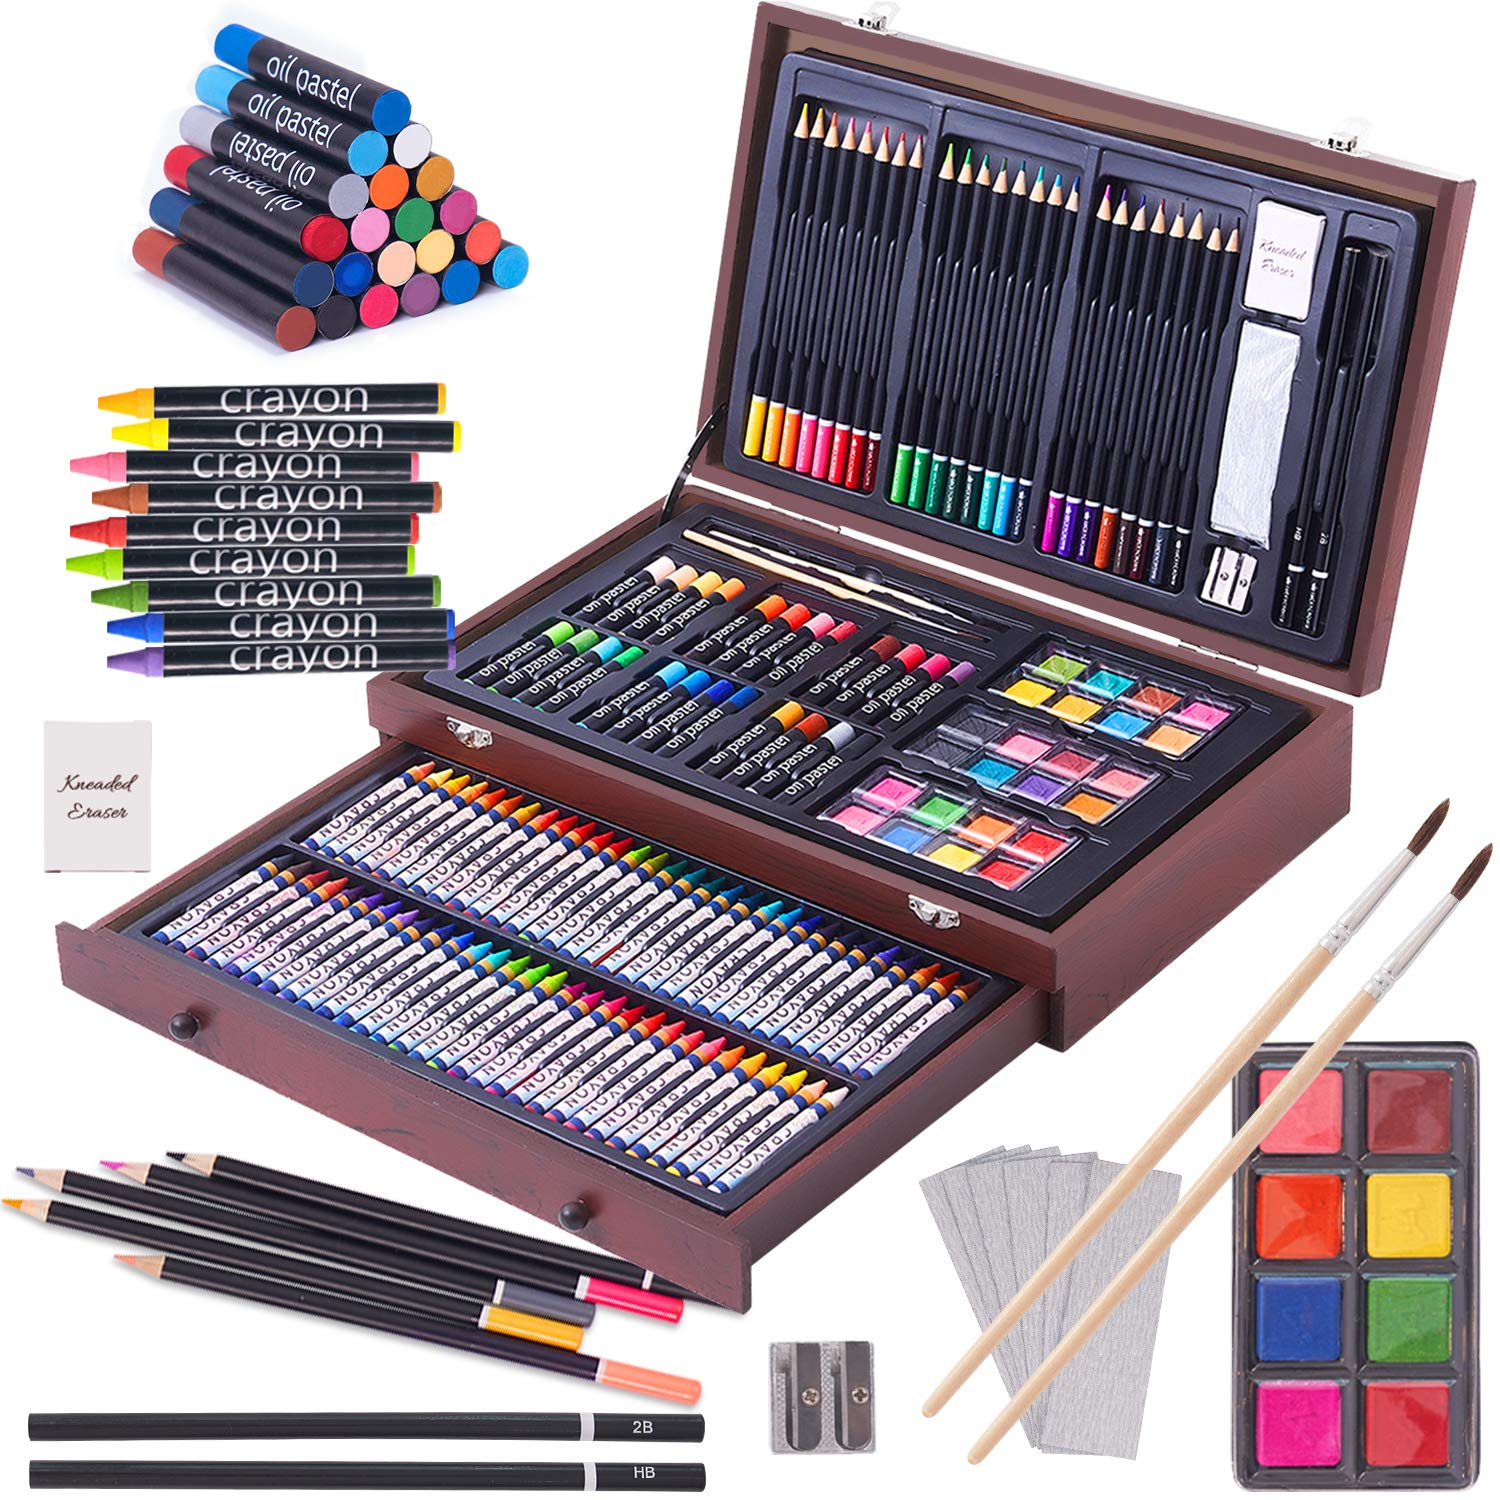 143 Piece Deluxe Art Set, Paint Set in Portable Wooden Case,Professional Art Kit,Art Supplies for Adults,Teens and Artist, Painting, Drawing & Art Supplies